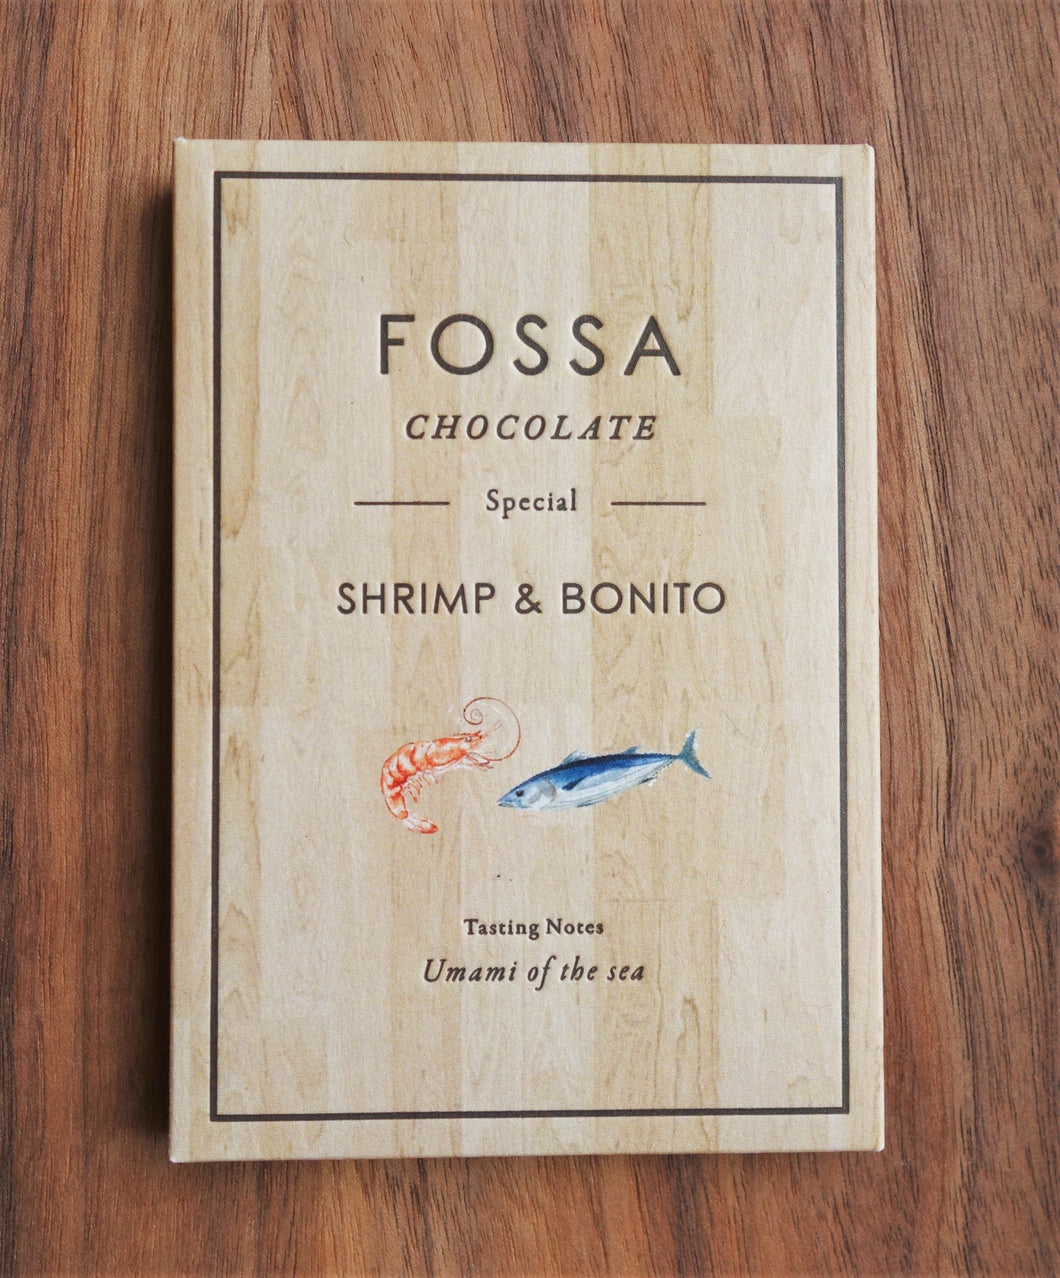 Fossa Shrimp and Bonito